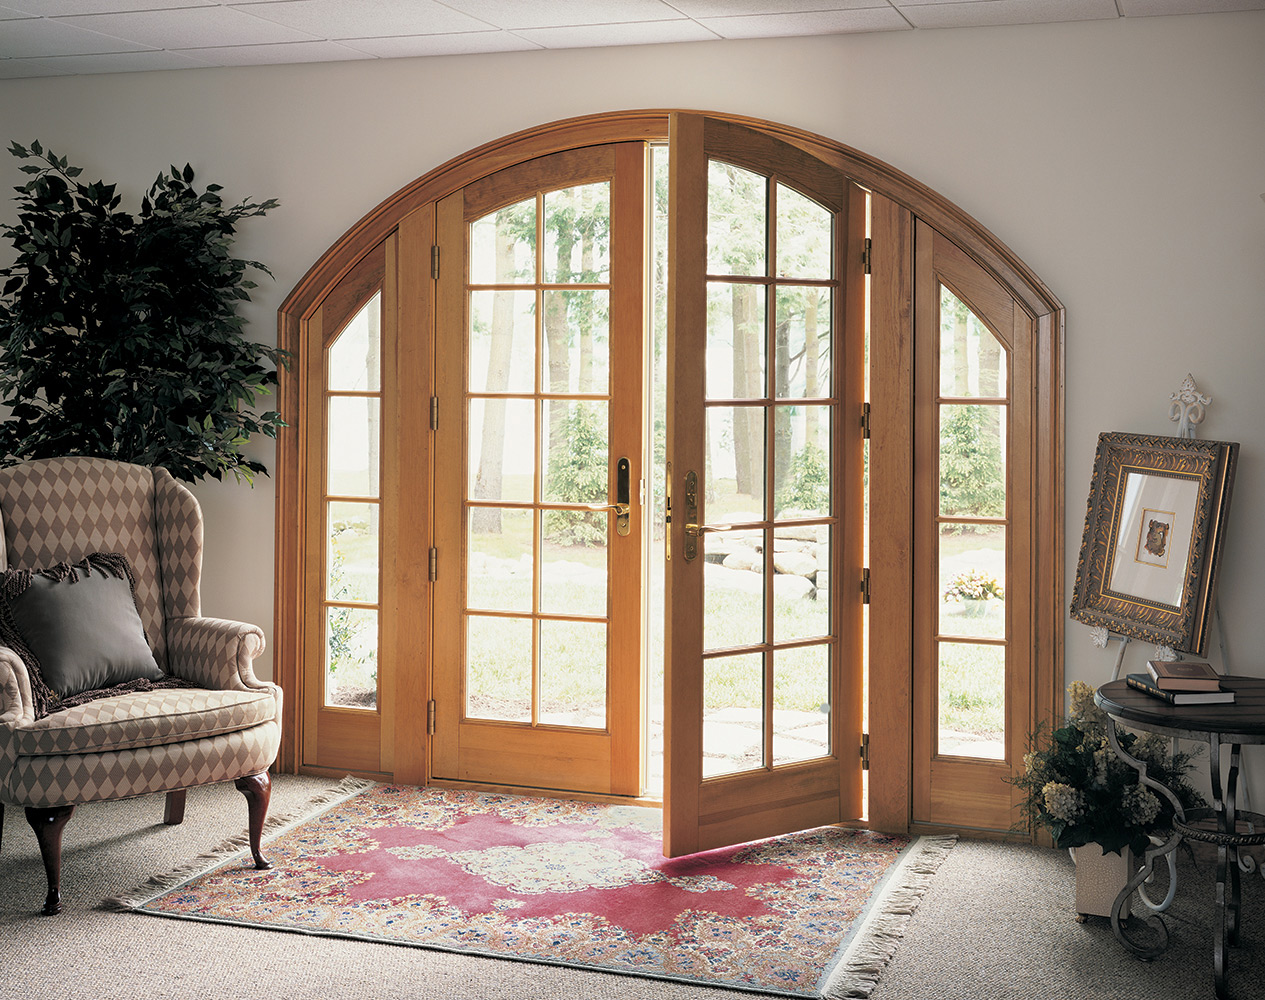 French Doors And Windows : Replacement patio doors wisconsin hometowne windows